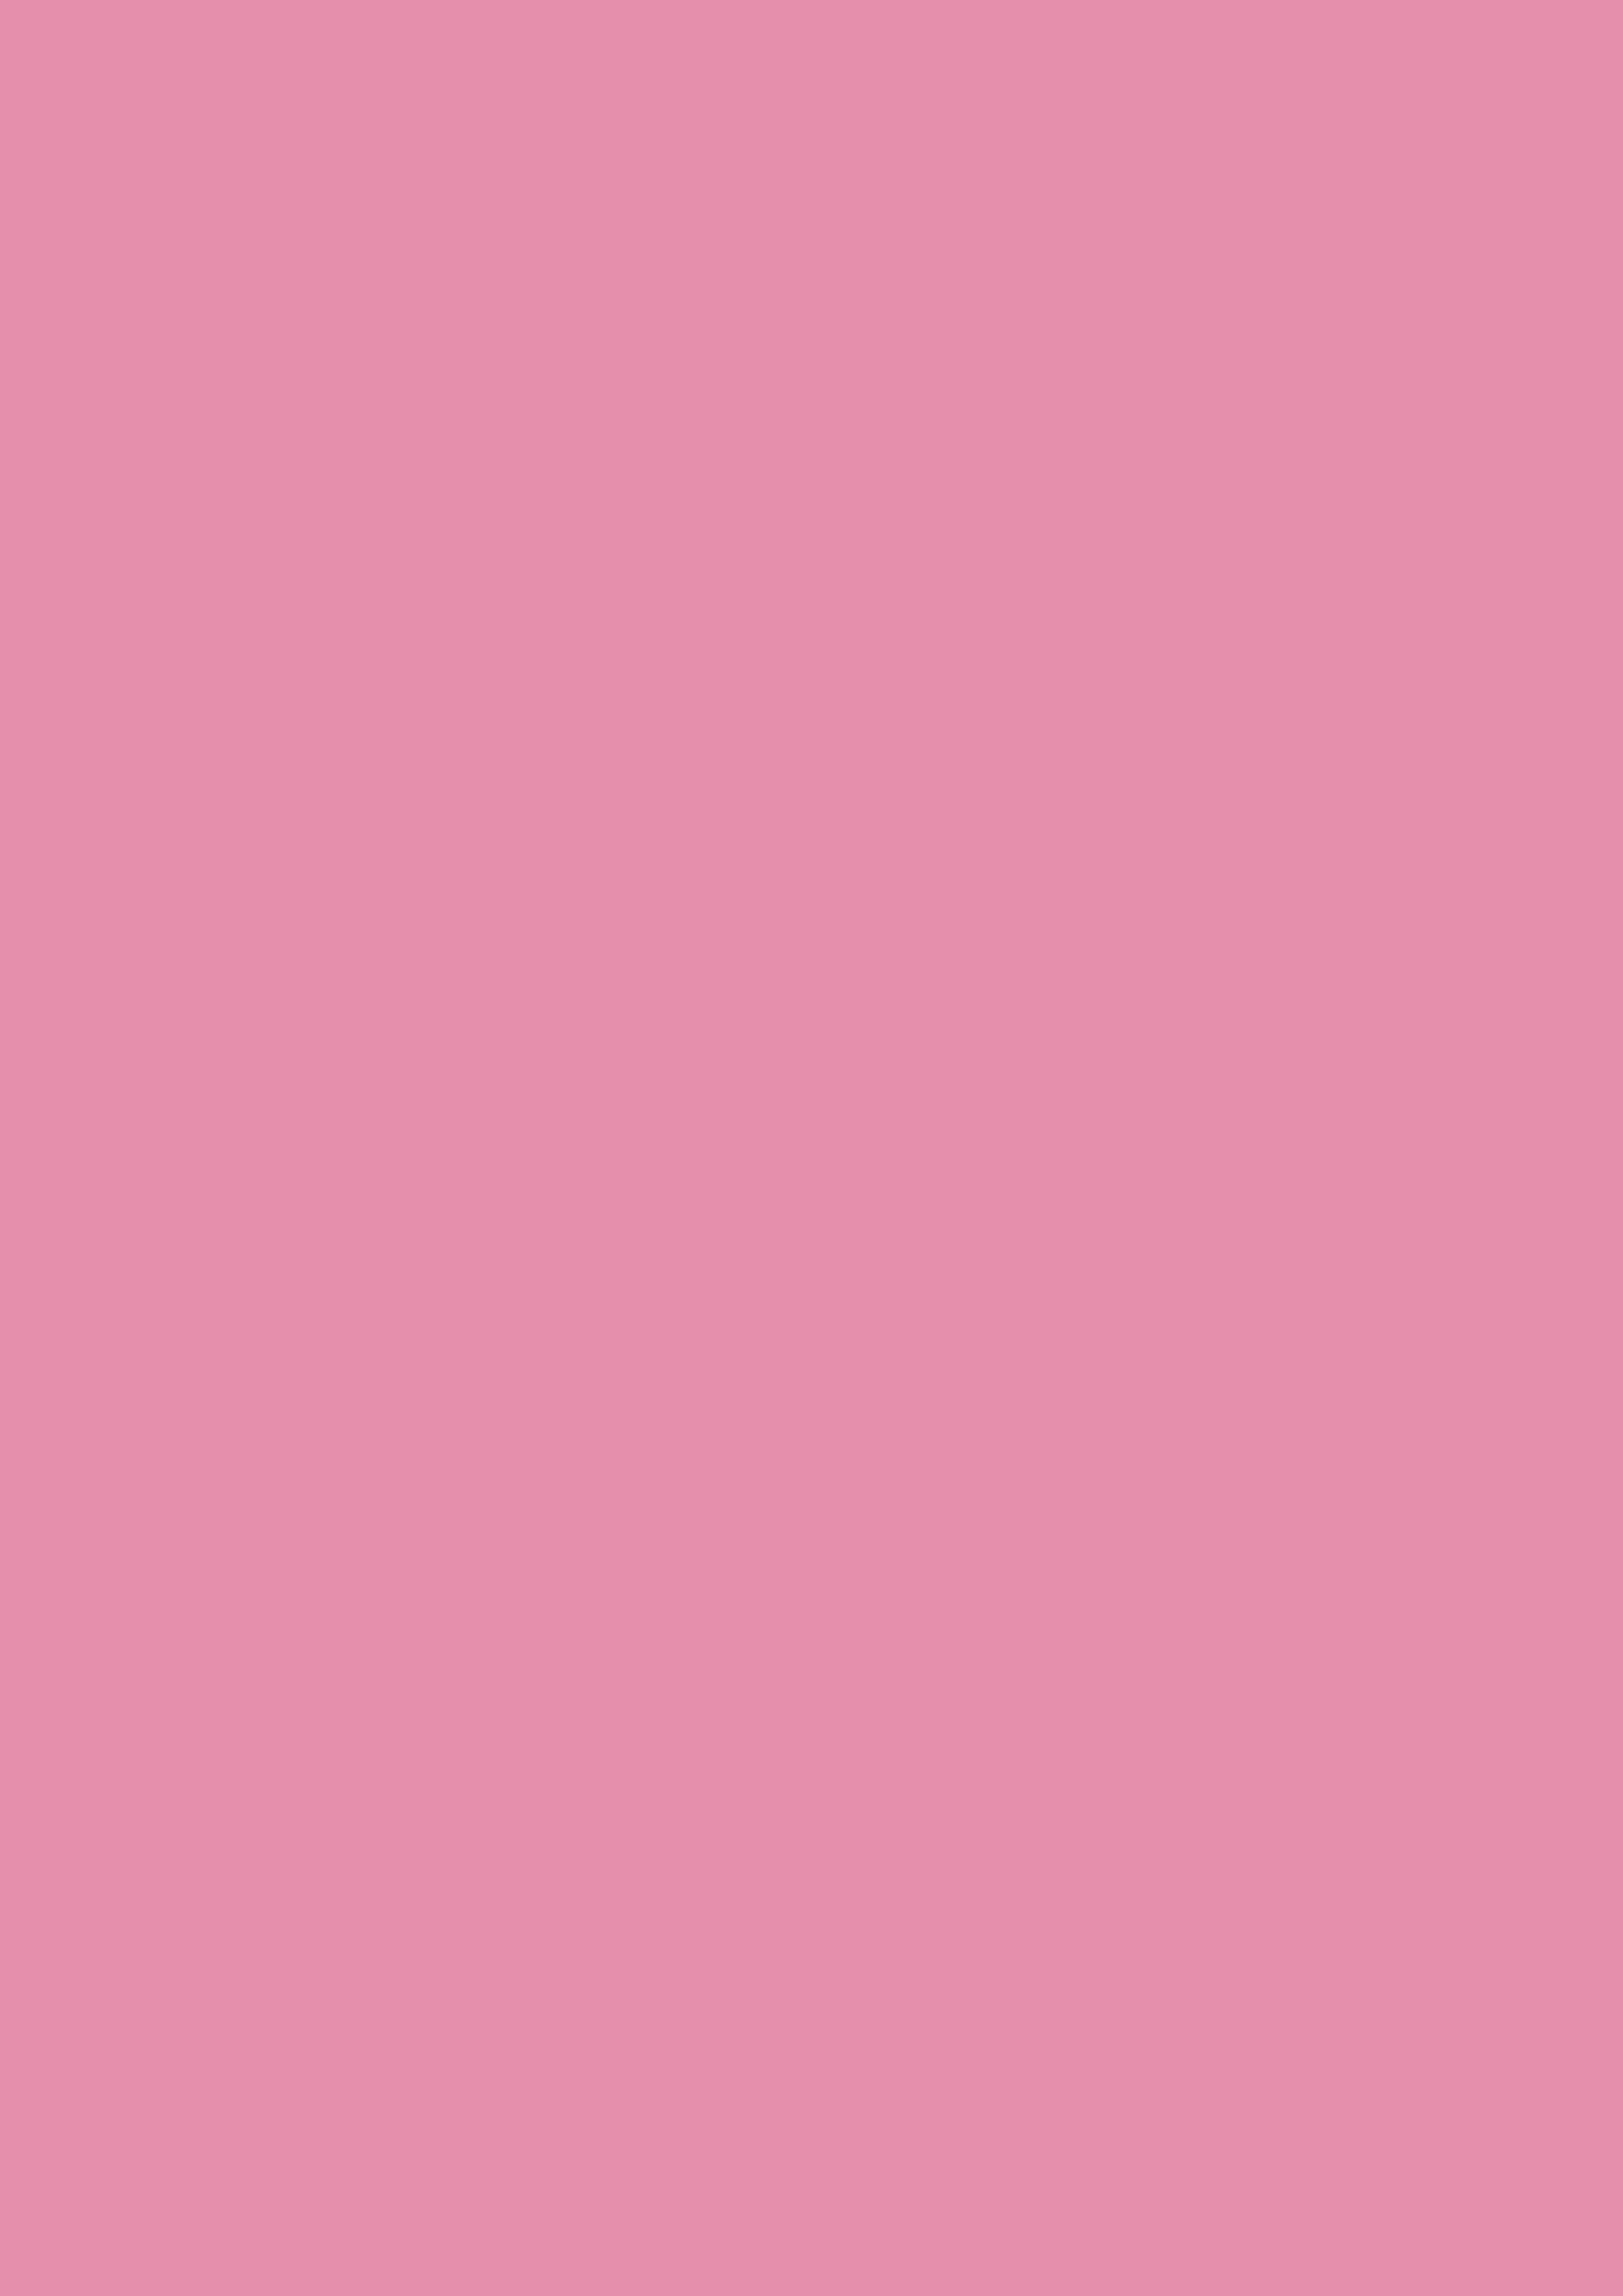 2480x3508 Charm Pink Solid Color Background 2480x3508